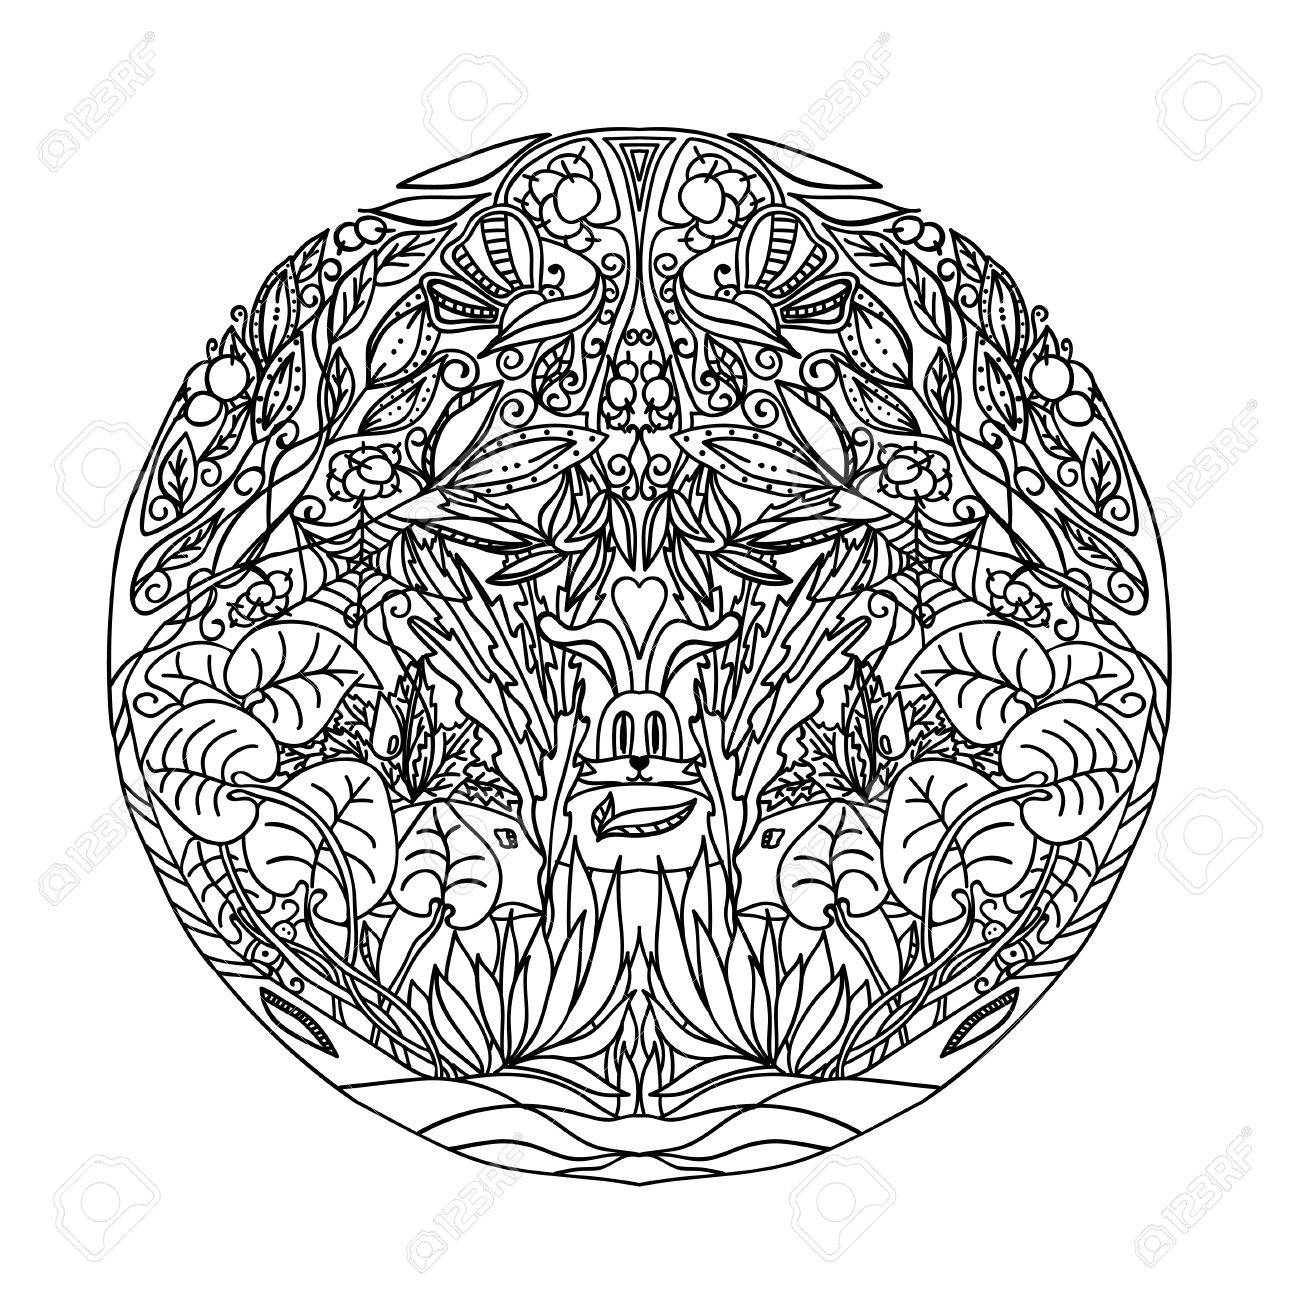 1300x1300 Black And White Circle Ornament Wild Forest, Ornamental Round